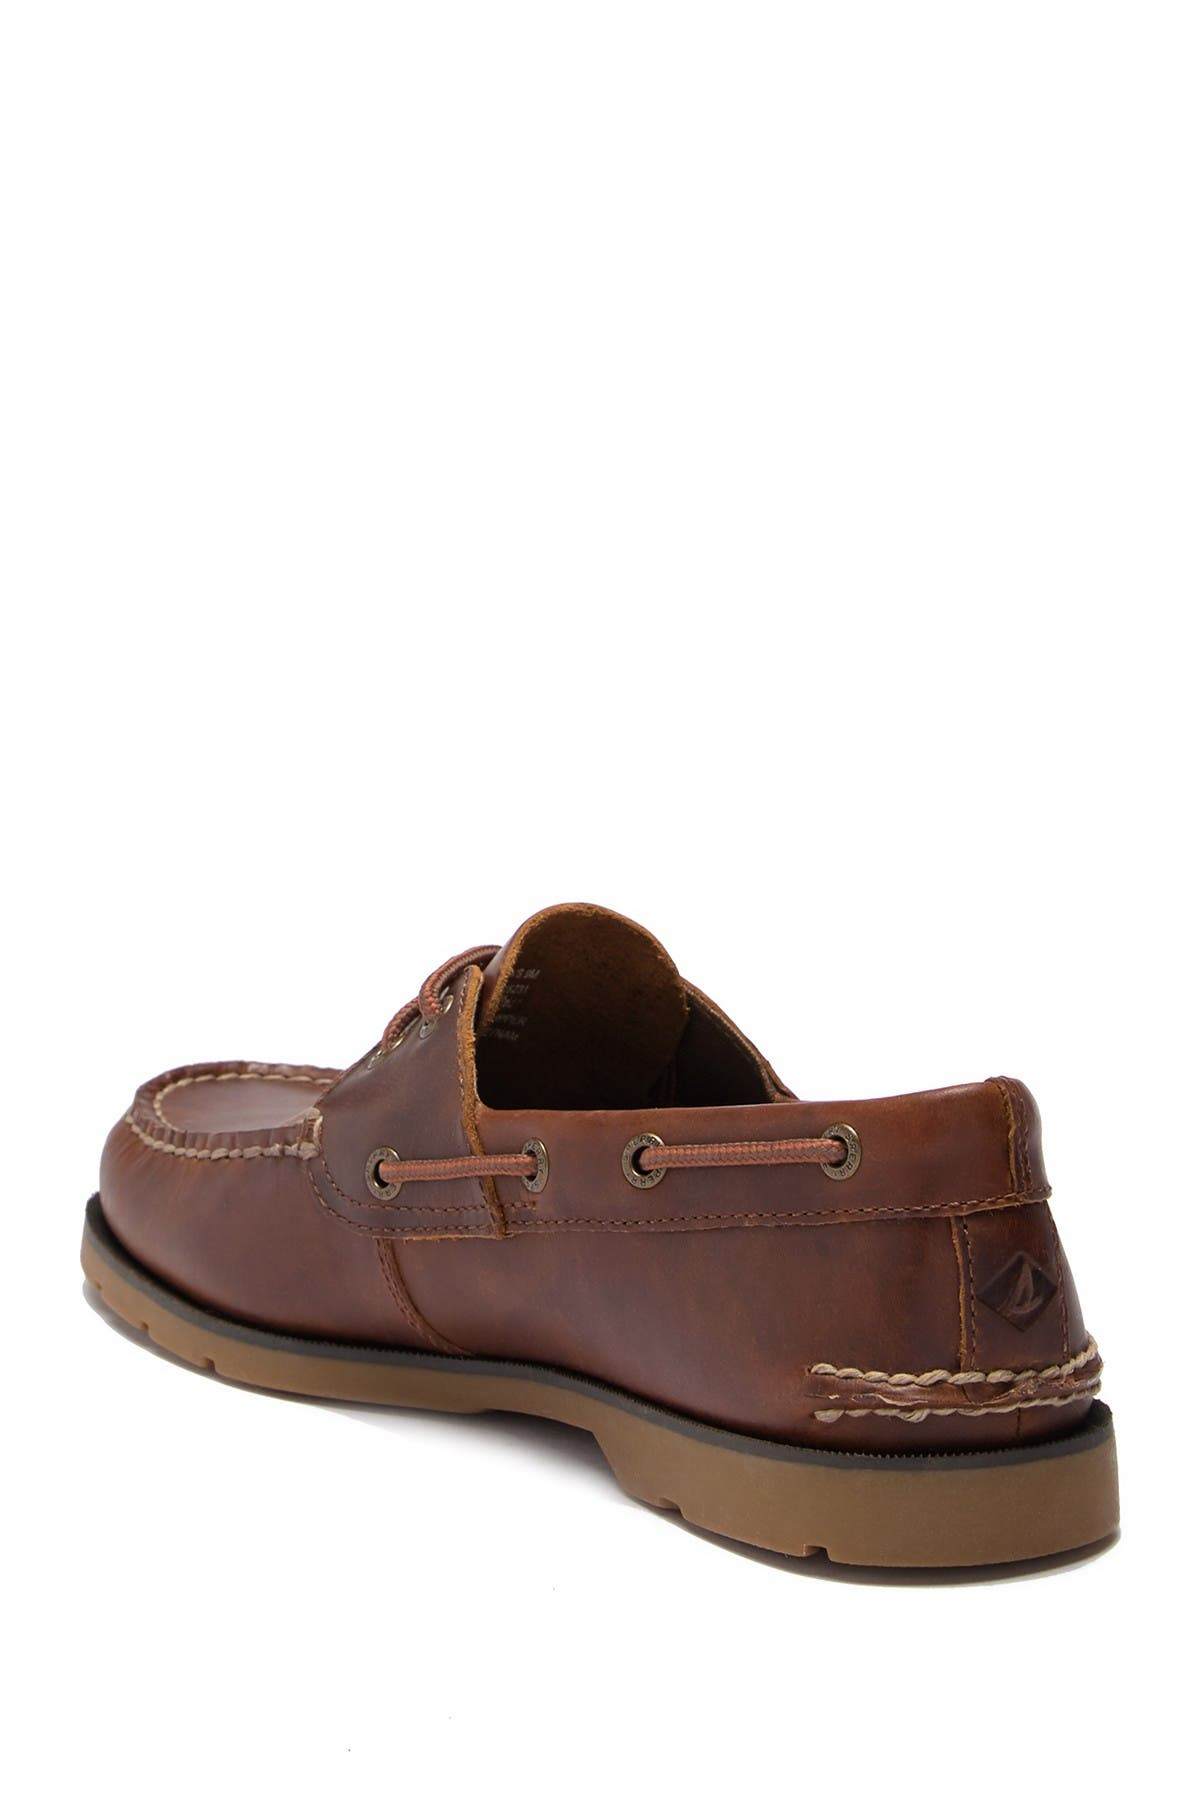 Image of Sperry Leeward 2-Eye Yacht Club Leather Boat Shoe - Wide Width Available